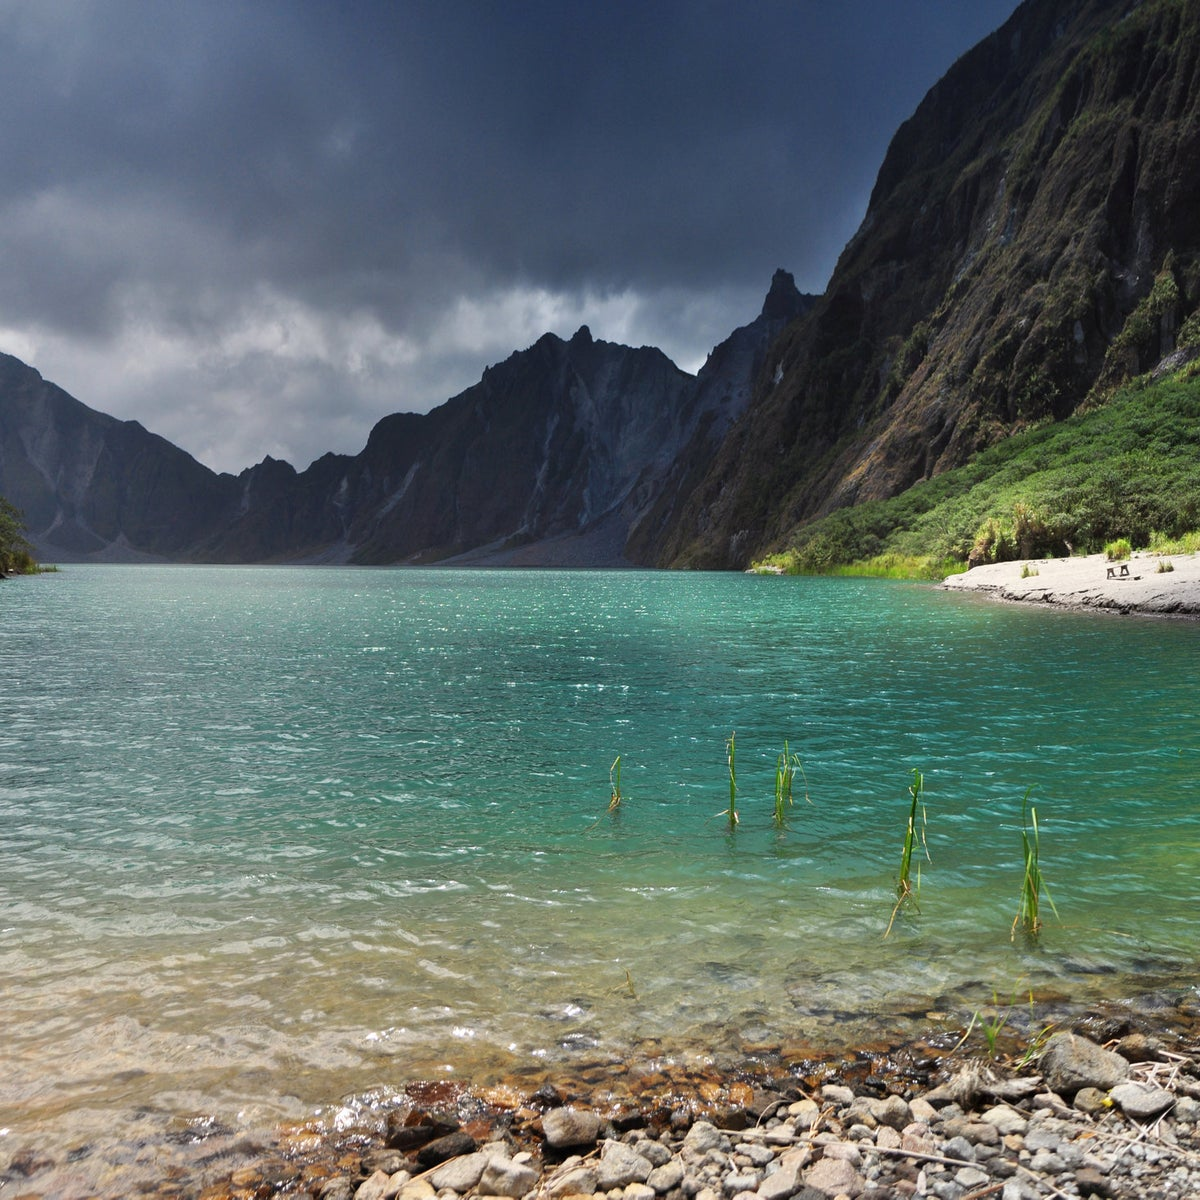 Caldera of Mt. Pinatubo